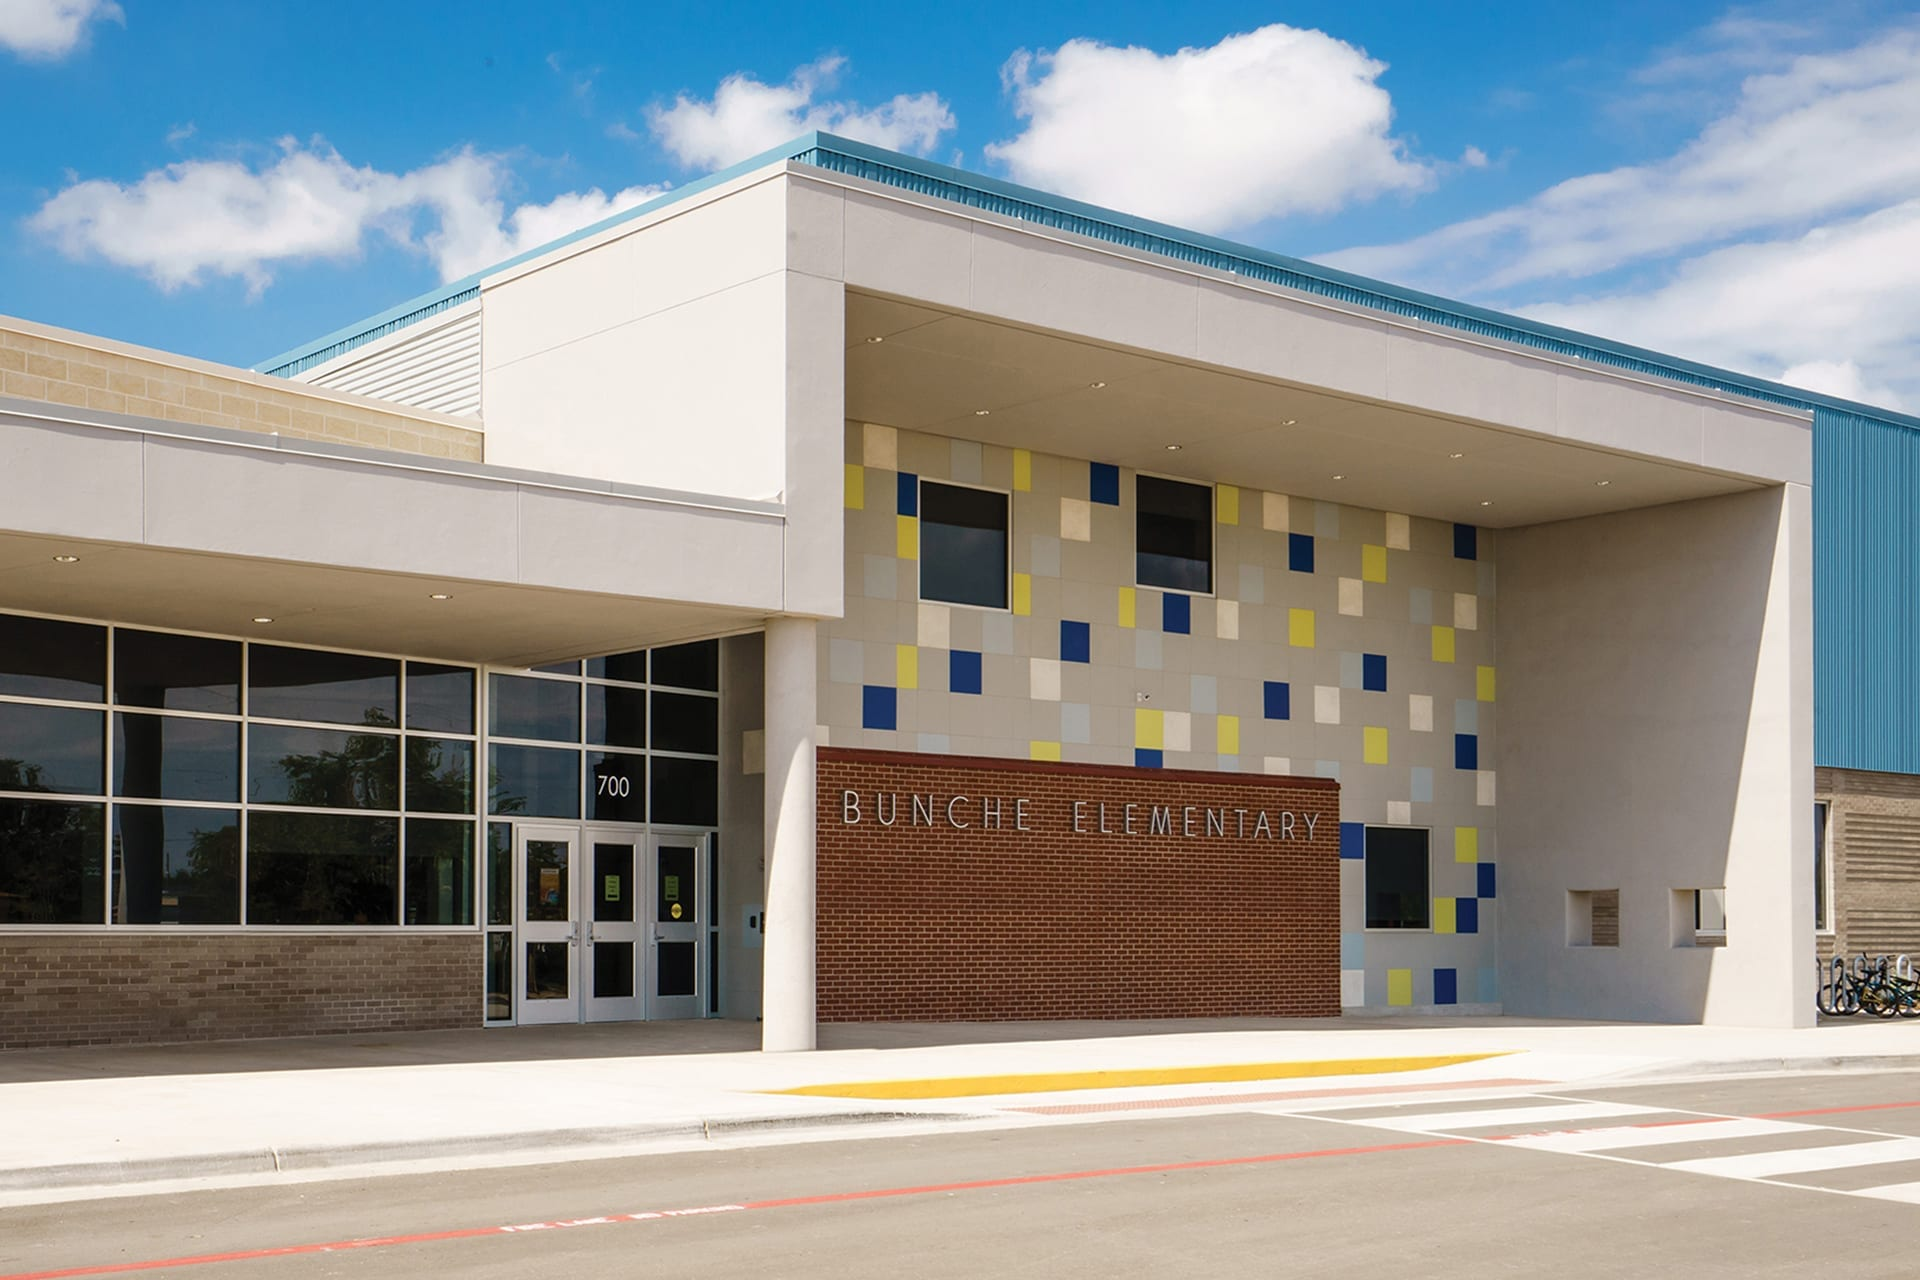 Ralph Bunche Elementary School Exterior Photo